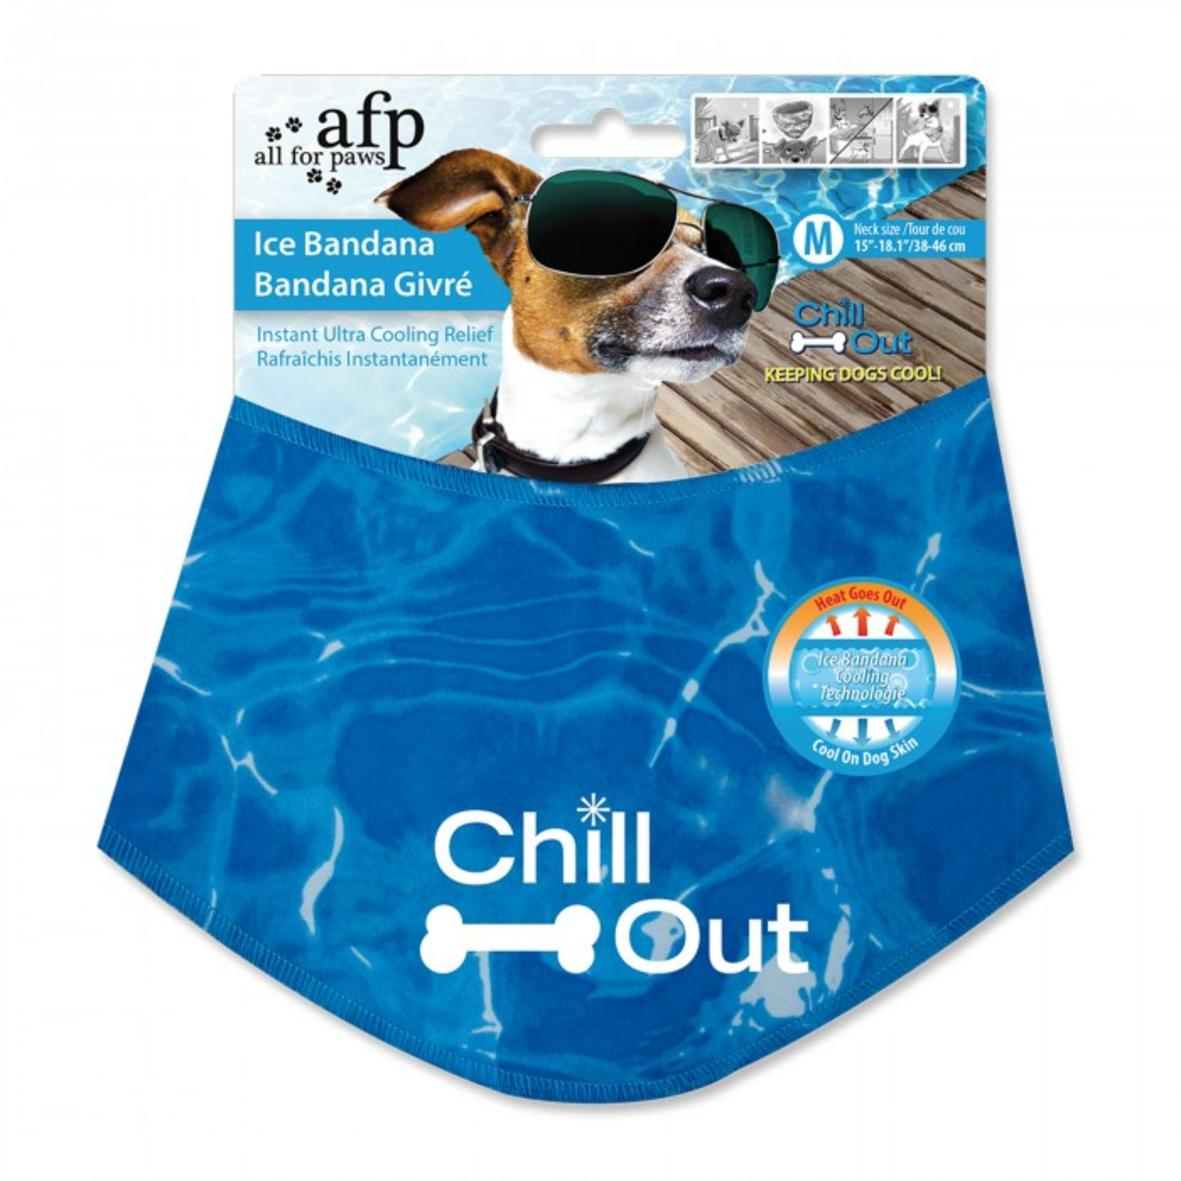 CLEARANCE All for Paws Ice Bandana